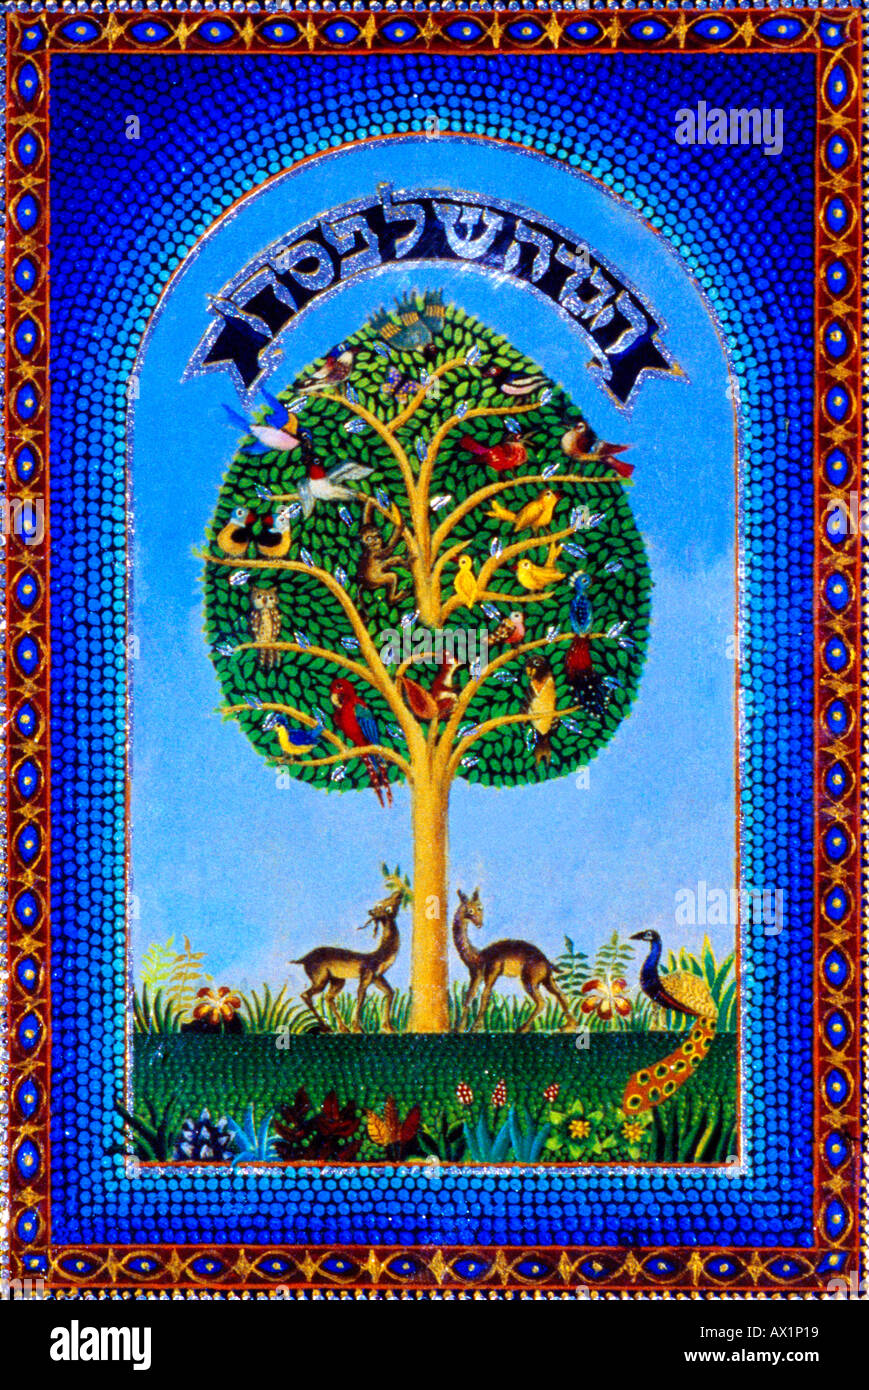 Hagadah Passover Judaism Cover With Tree Of Life - Stock Image